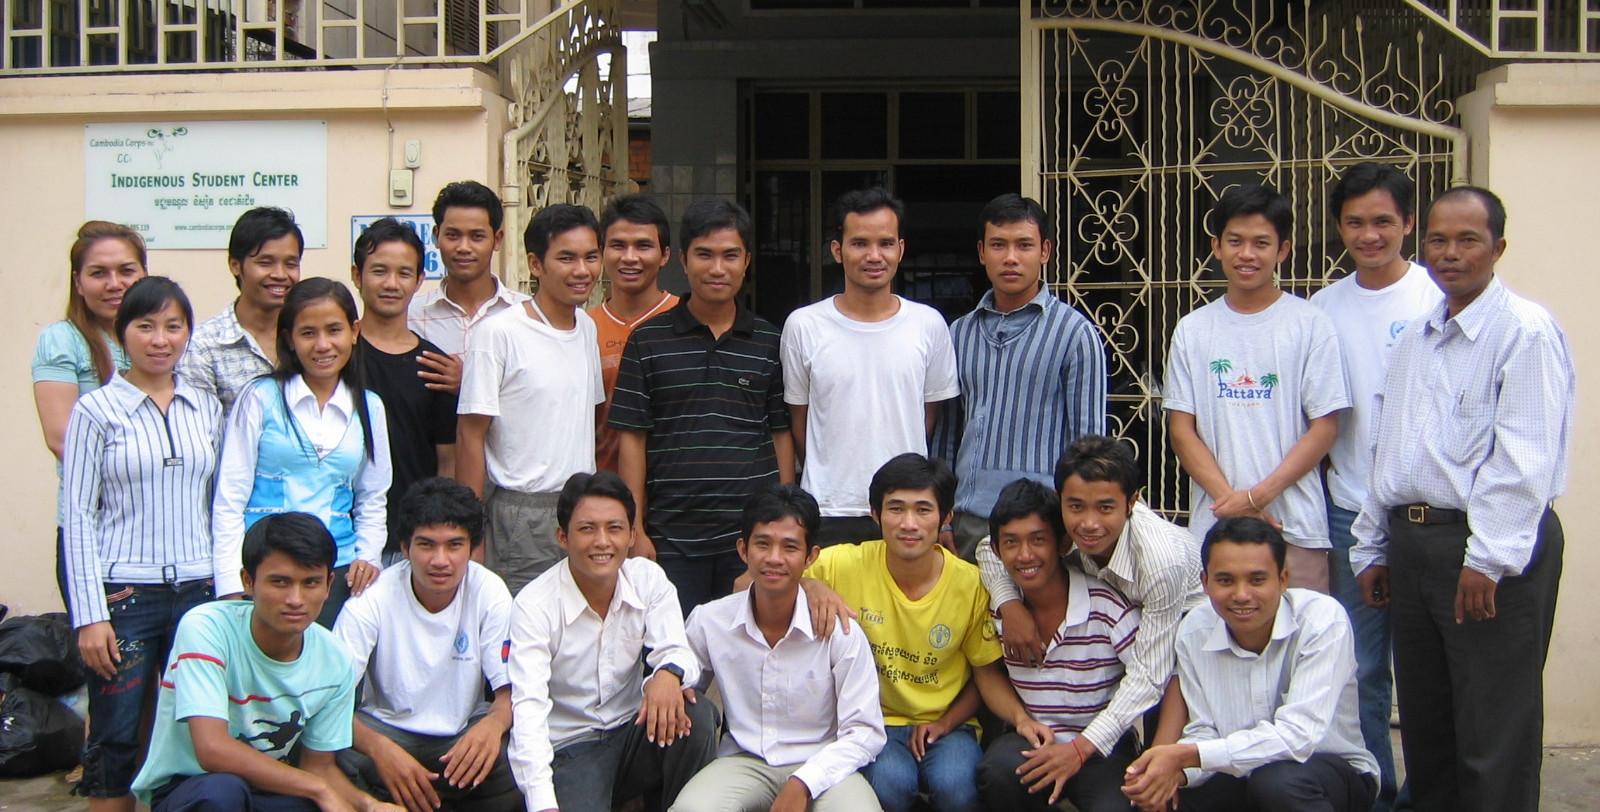 First Group of CCi College Students, 2007